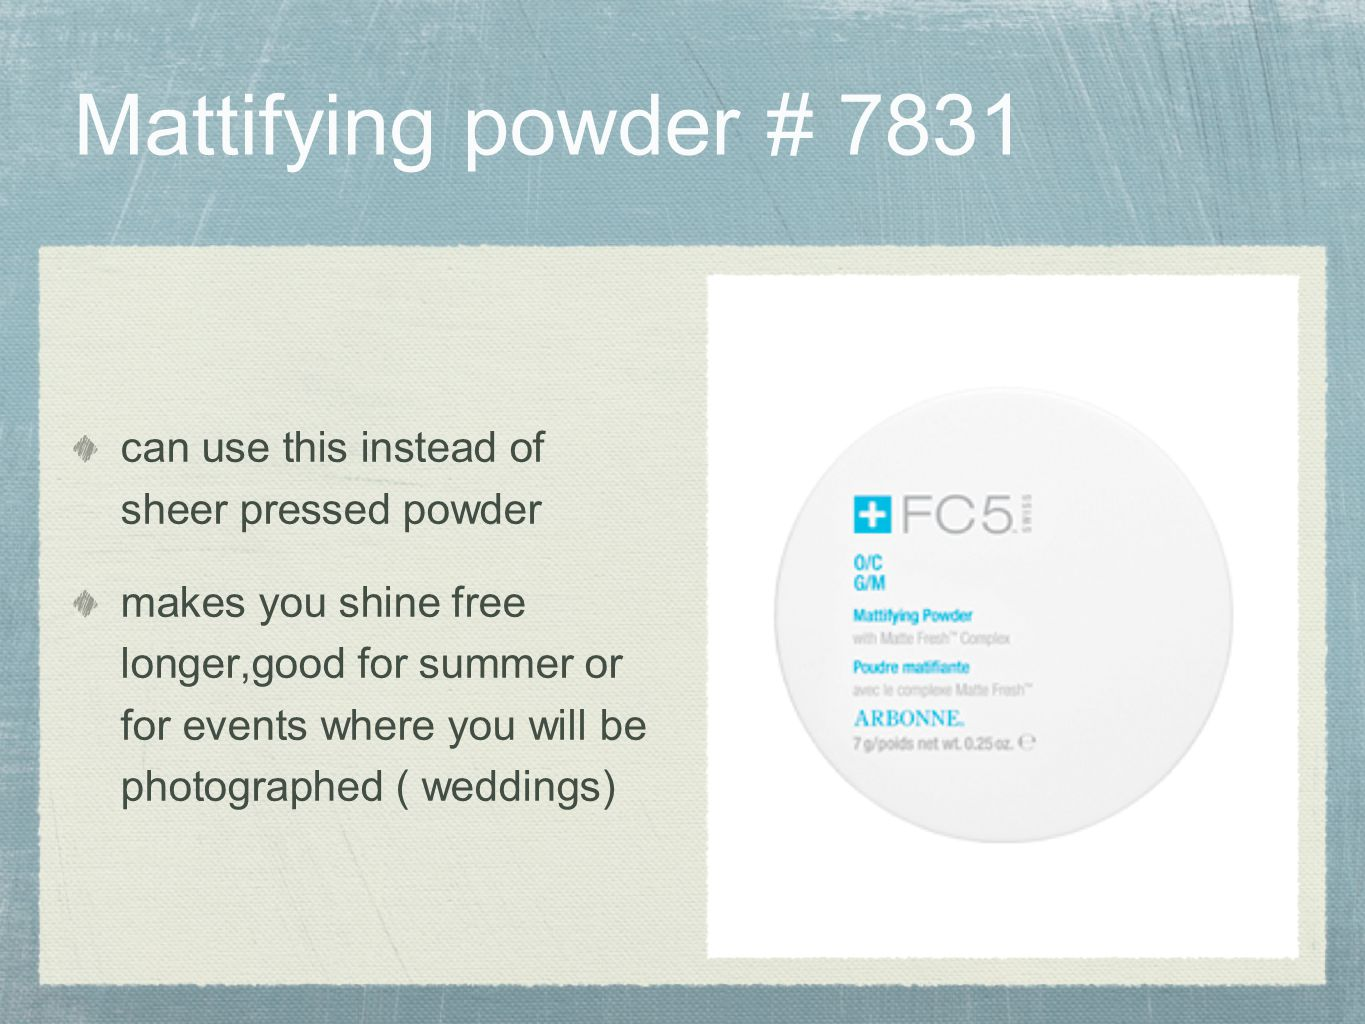 Mattifying powder # 7831 can use this instead of sheer pressed powder